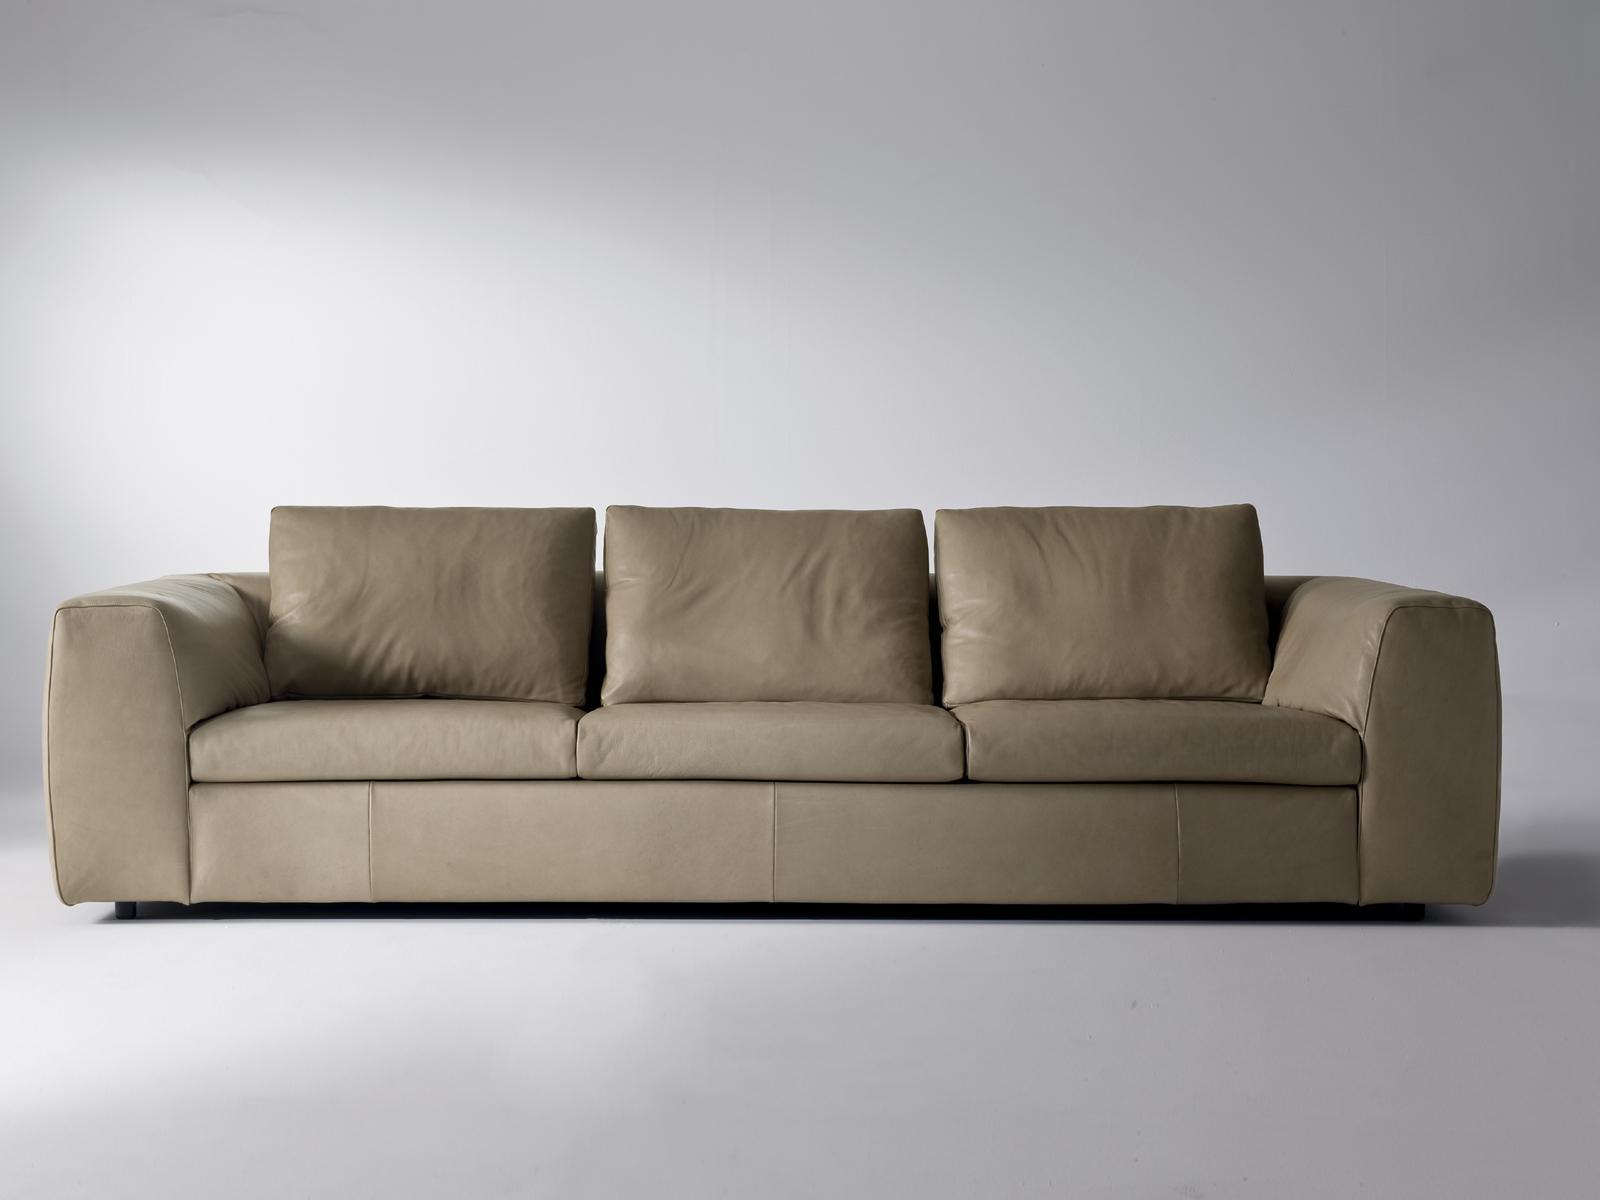 Kristall | 3 Seater Sofai 4 Mariani Design Mauro Lipparini Within Three Seater Sofas (Image 15 of 20)